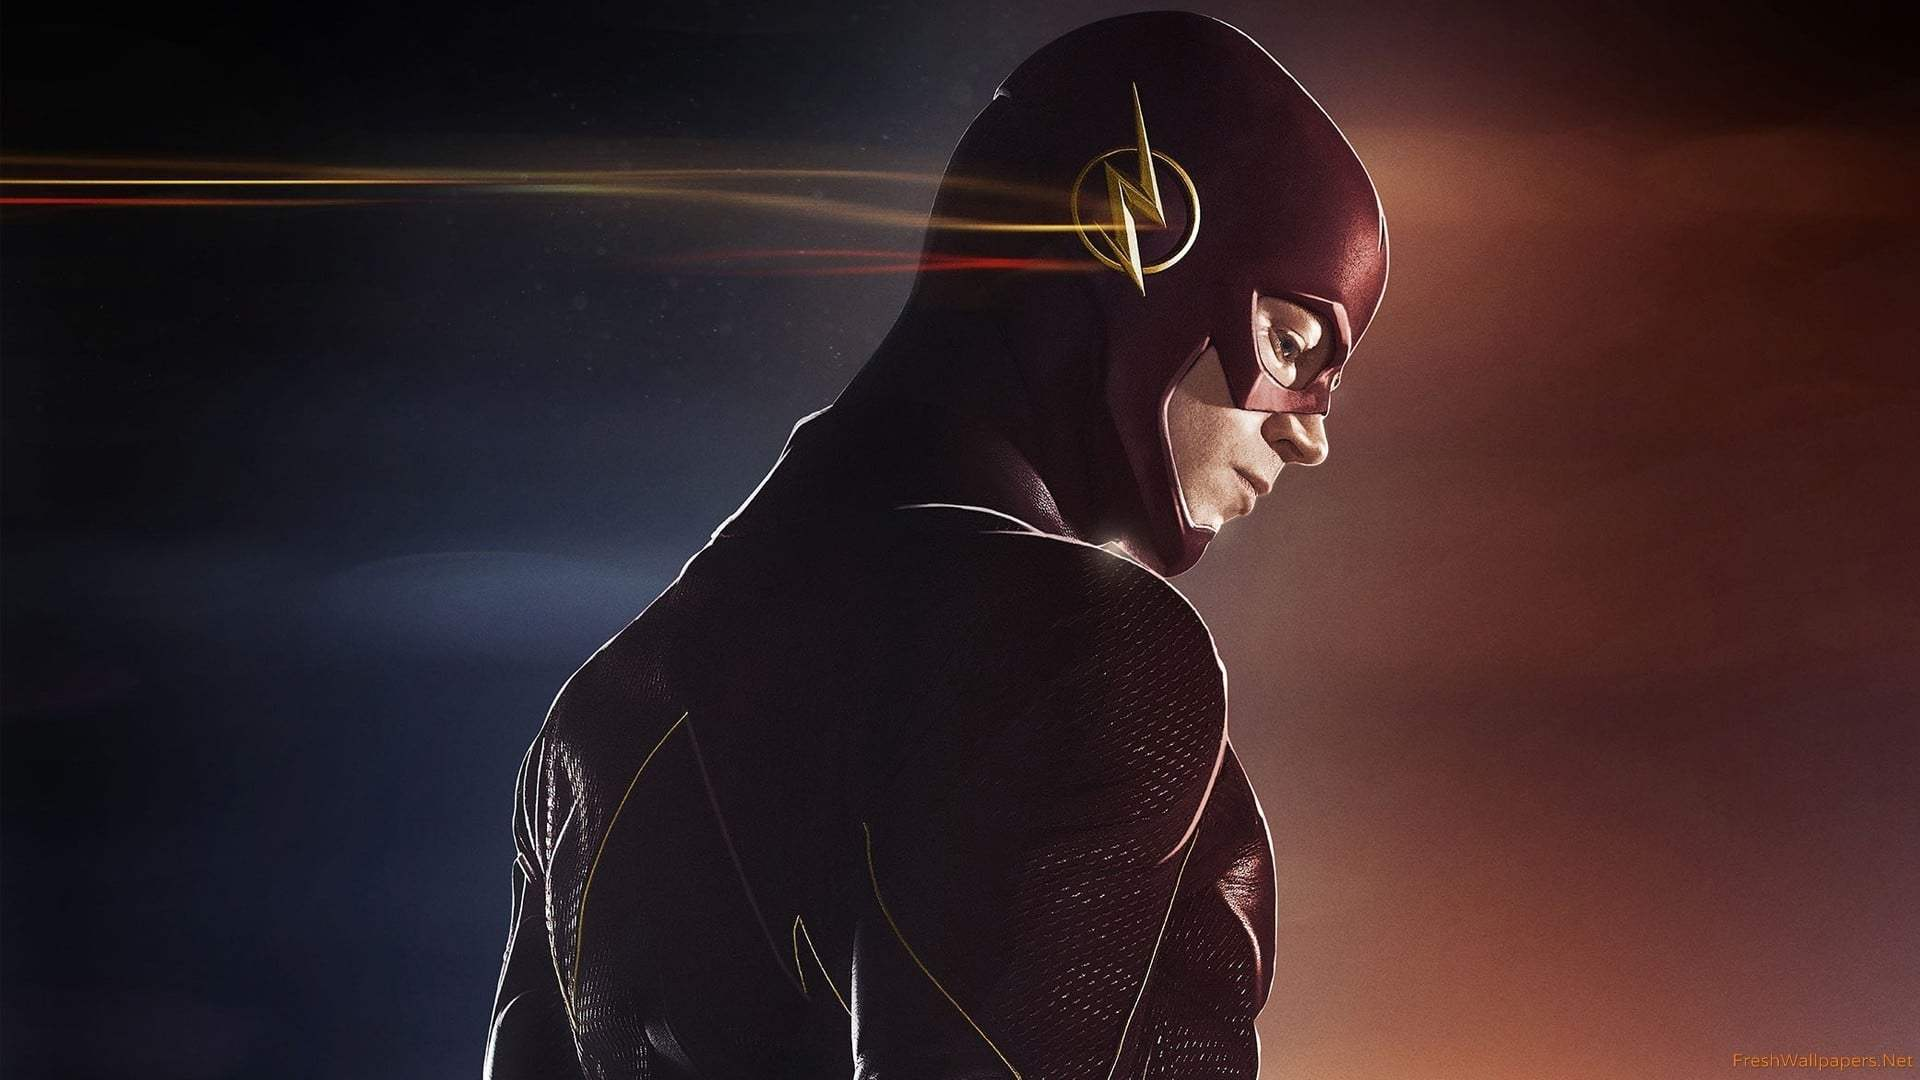 WATCH!! The Flash Season 7 Episode 1 Premiere